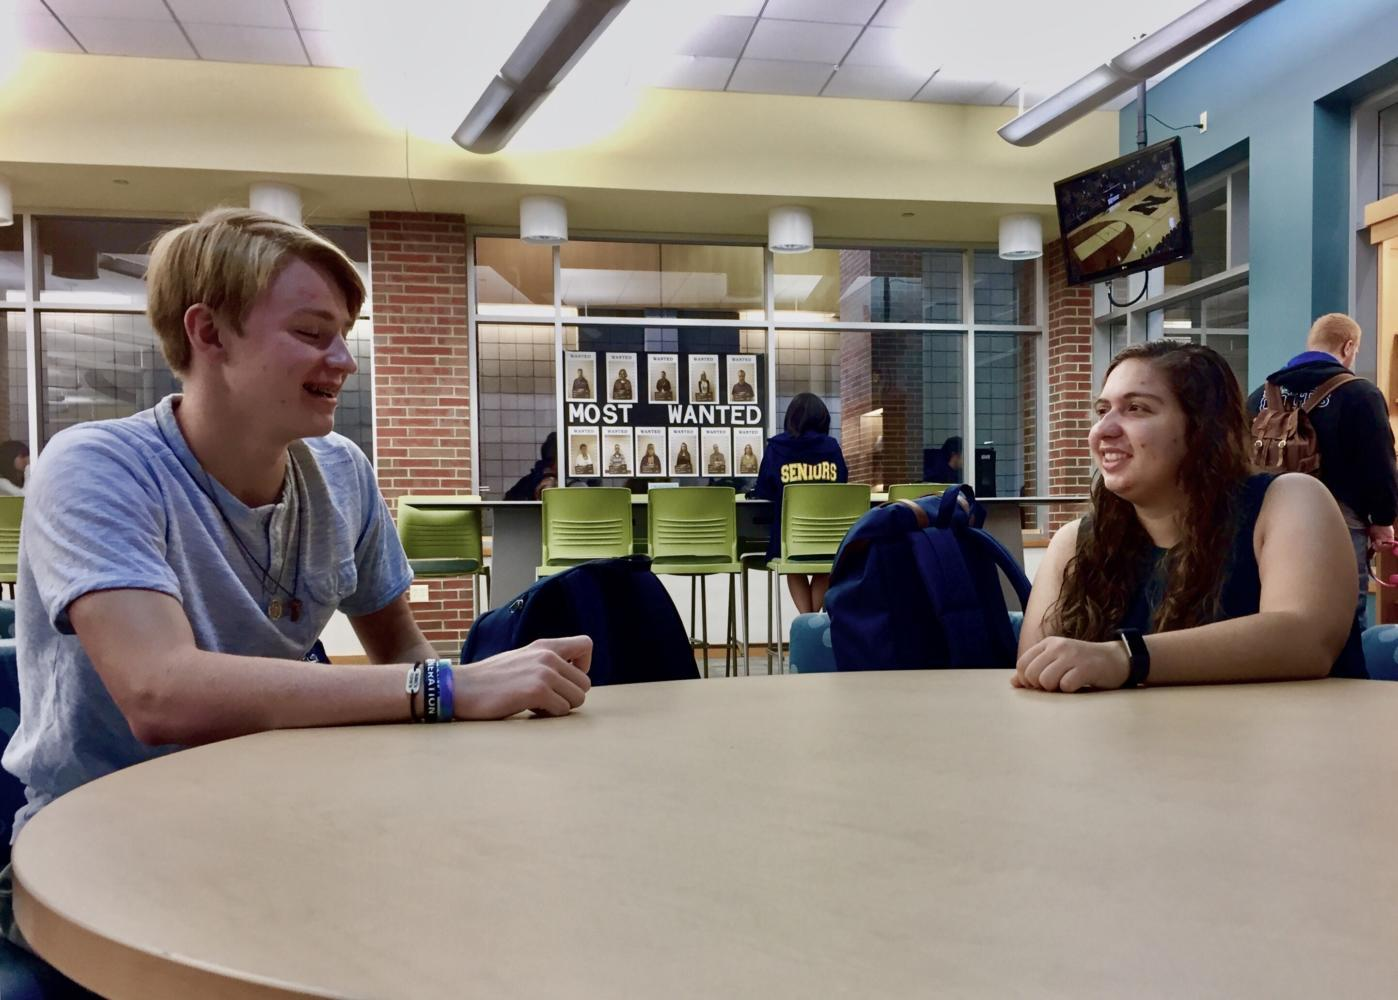 Sophia Tragesser, Teens for Life president and senior, and Michael Greener, Teens for Life treasurer and junior, meet in the library to discuss future club plans. The club has not found a sponsor yet, and the members have scheduled meeting with possible sponsors throughout the week. ​